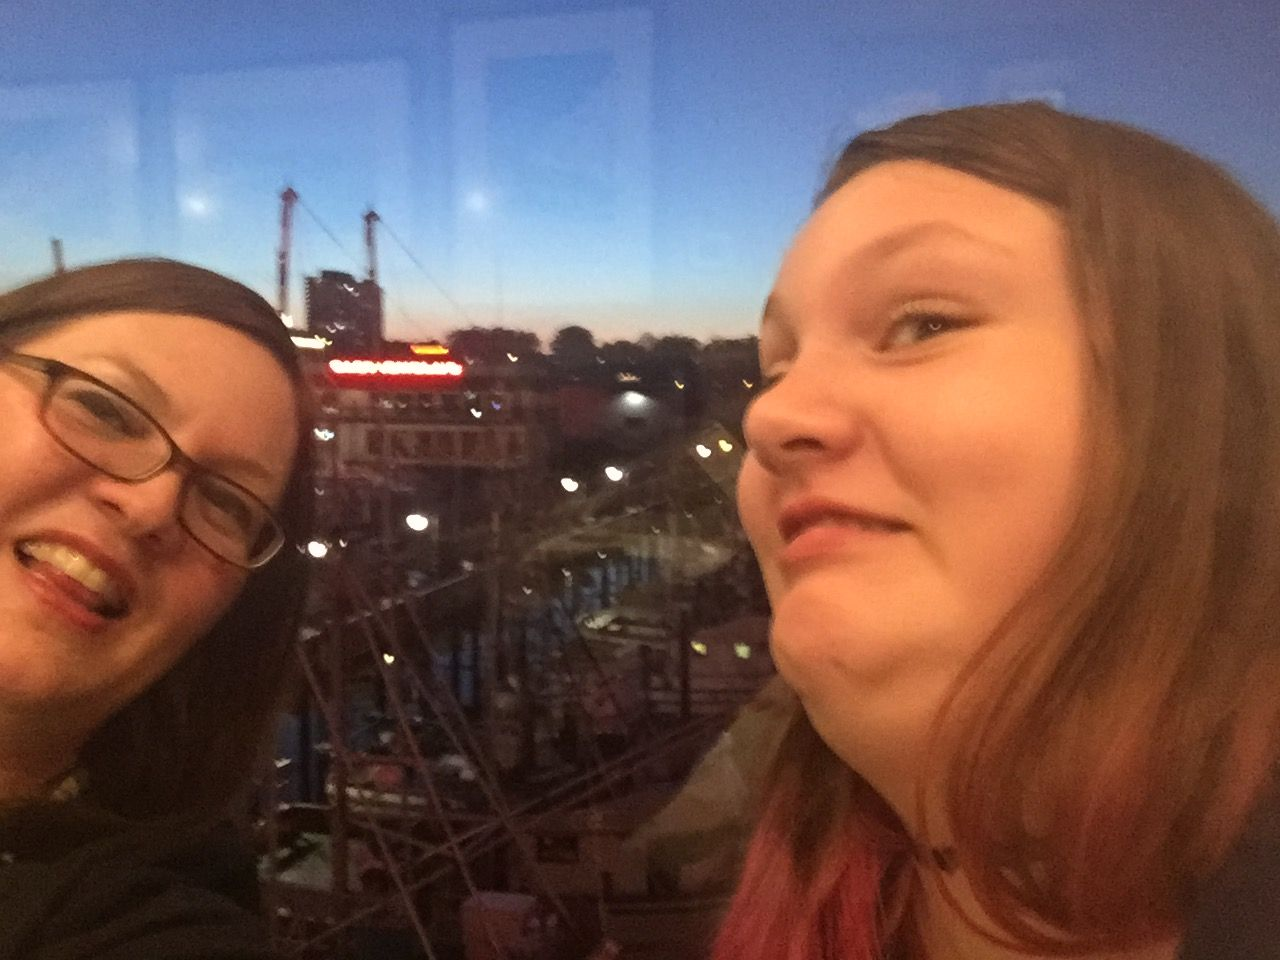 My daughter and I posing in front of the view while eating at Alioto's on Fisherman's Wharf, January 2017.